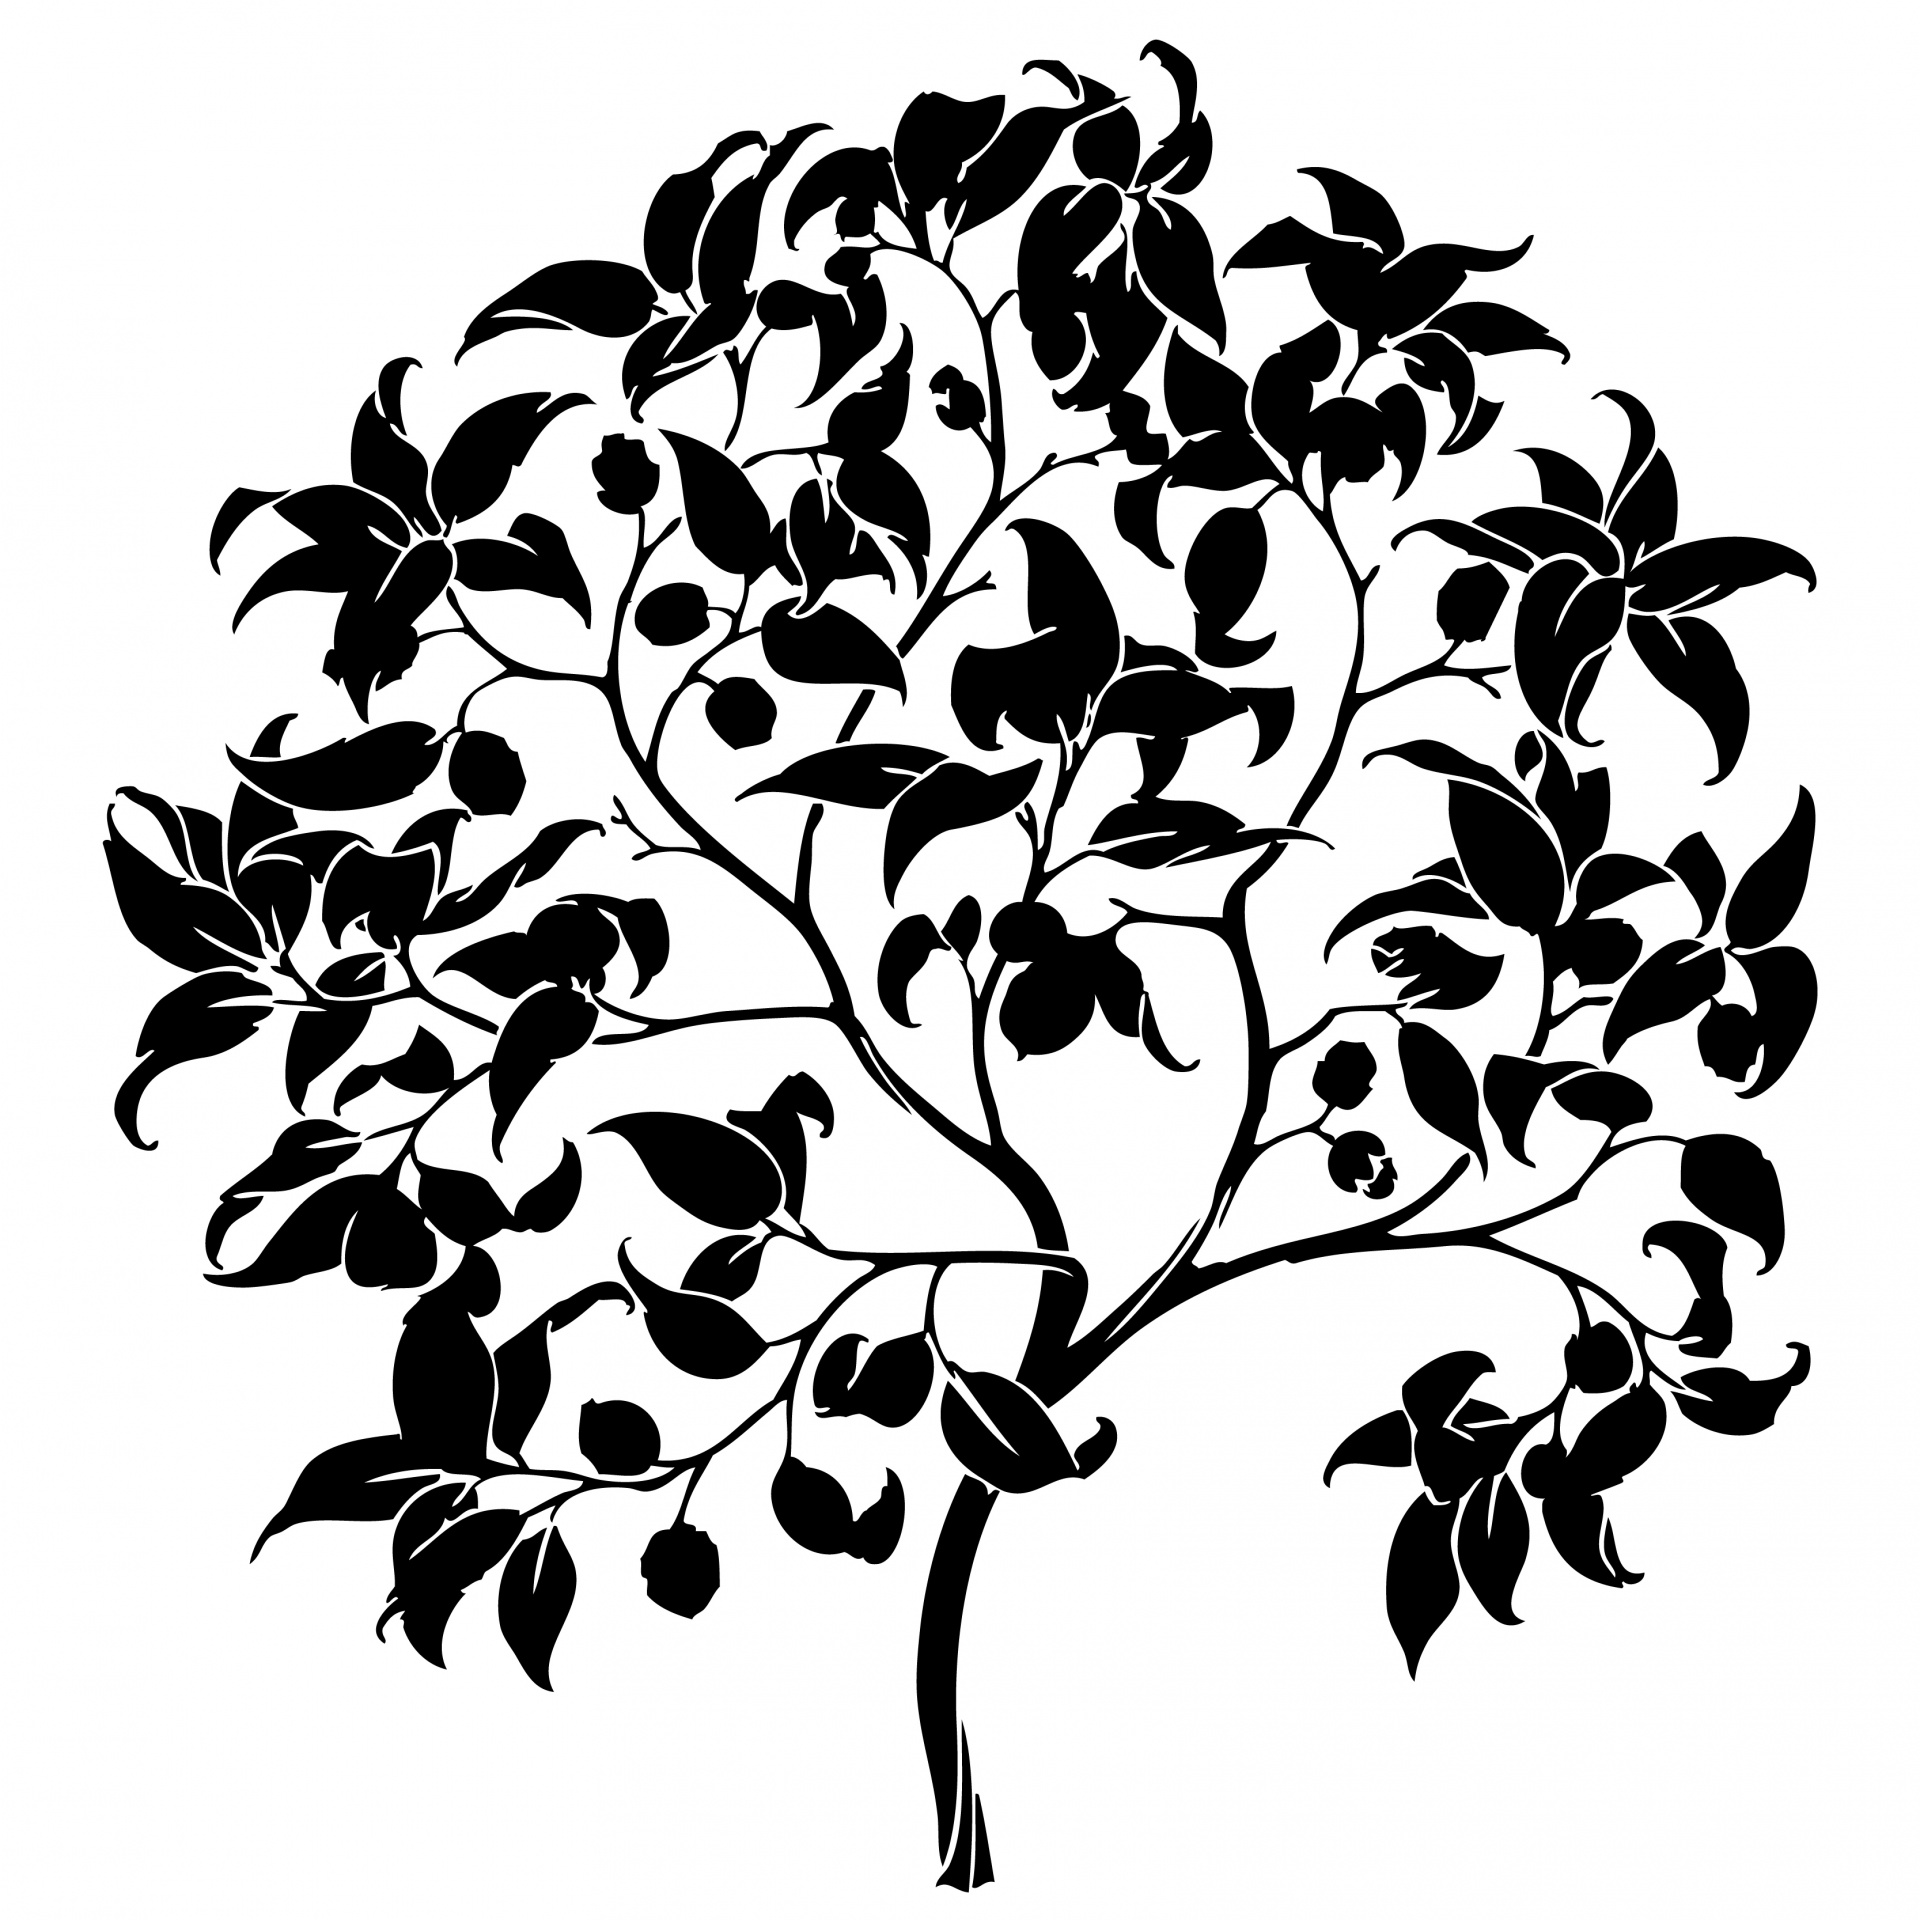 1920x1920 Tree Silhouette Clipart Free Stock Photo